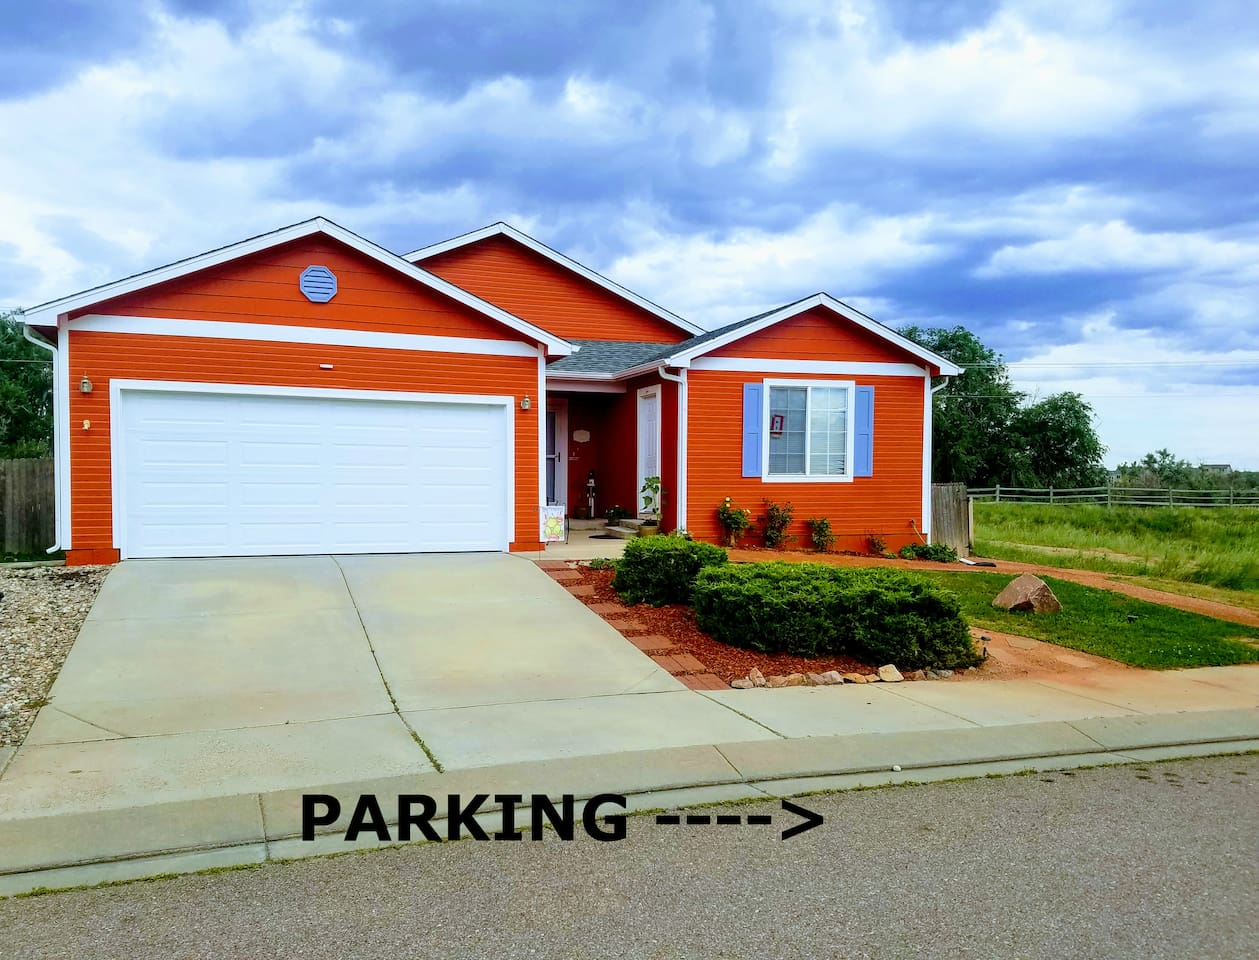 Parking in Front of House. Please Do Not Park in Driveway of Block Driveway. Thank You!